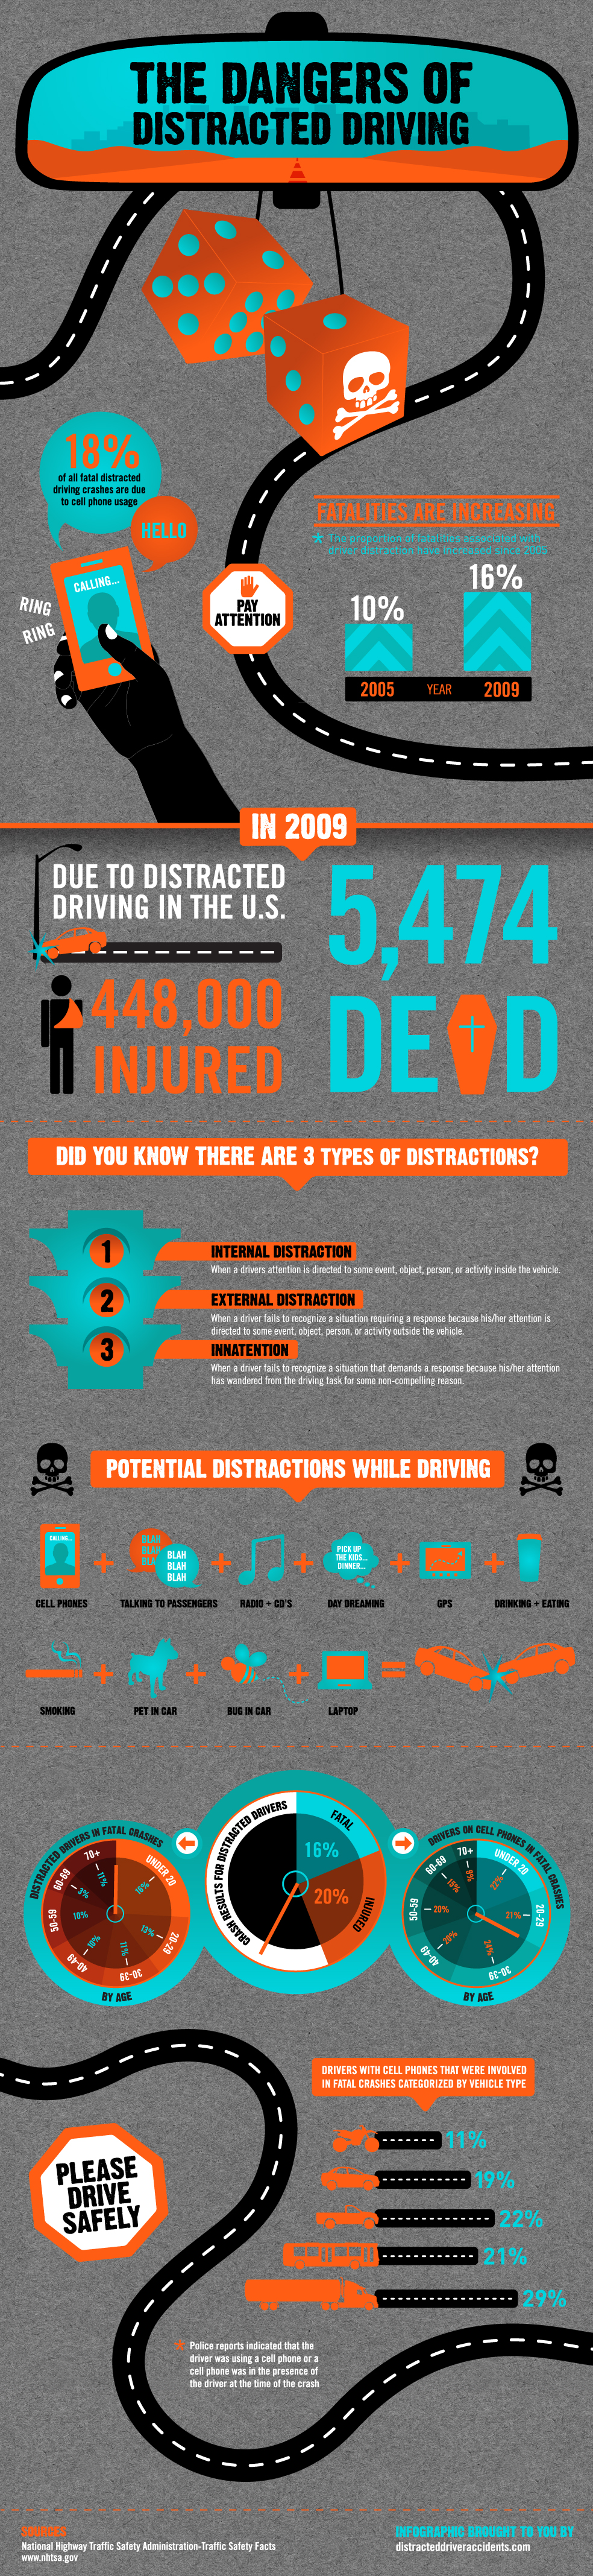 the-dangers-of-distracted-driving_5093f291cac4a